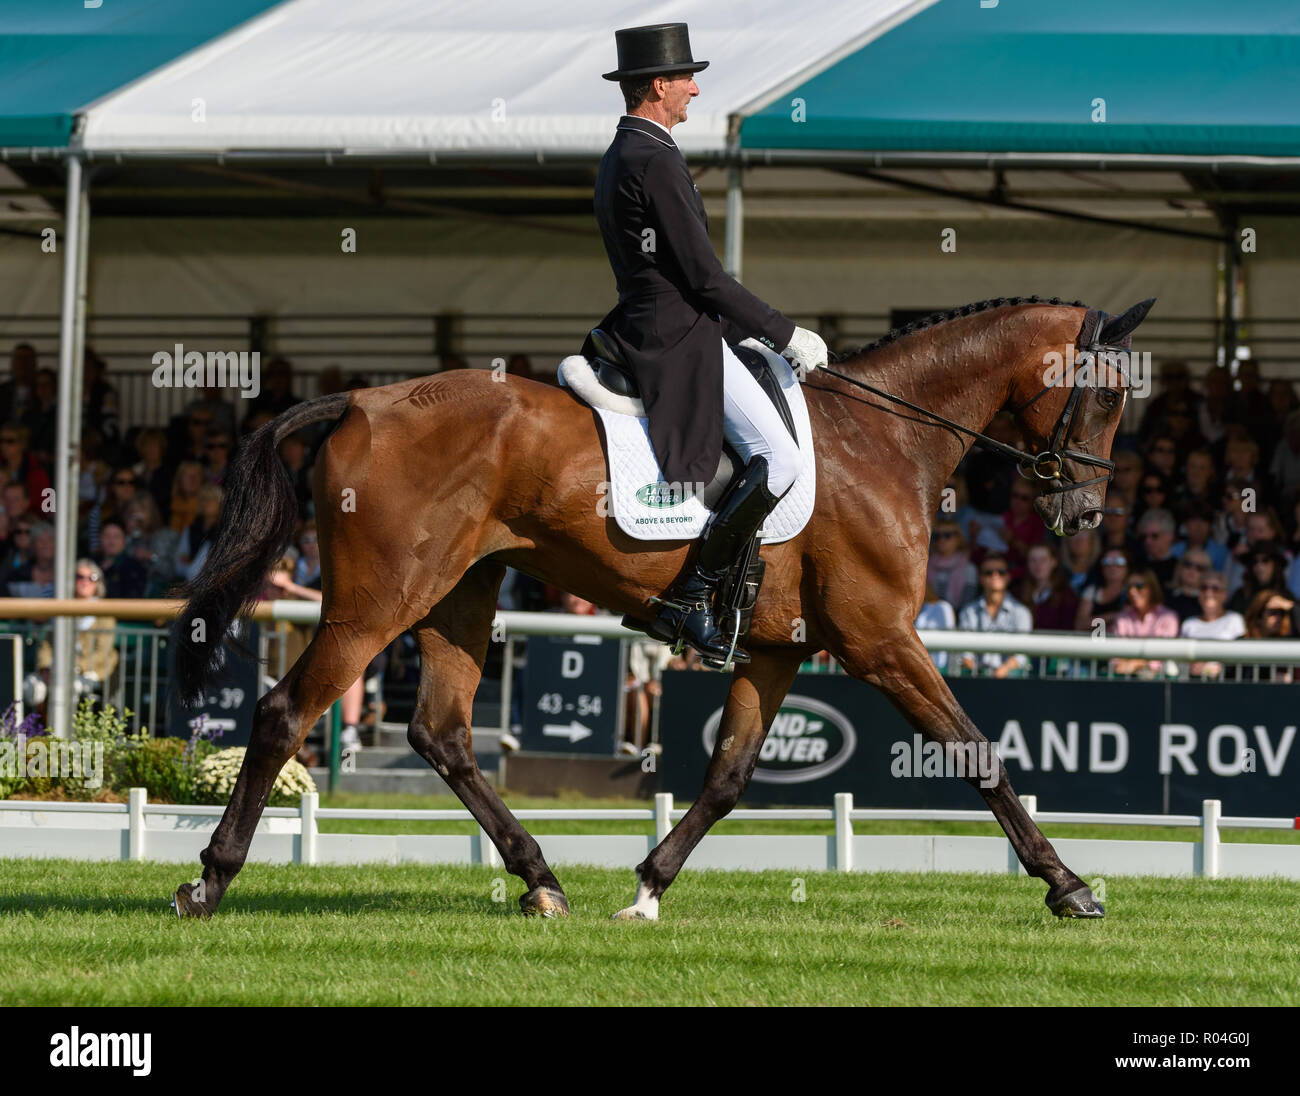 Mark Todd and NZB CAMPINO during the dressage phase of the Land Rover Burghley Horse Trials, 2018 Stock Photo